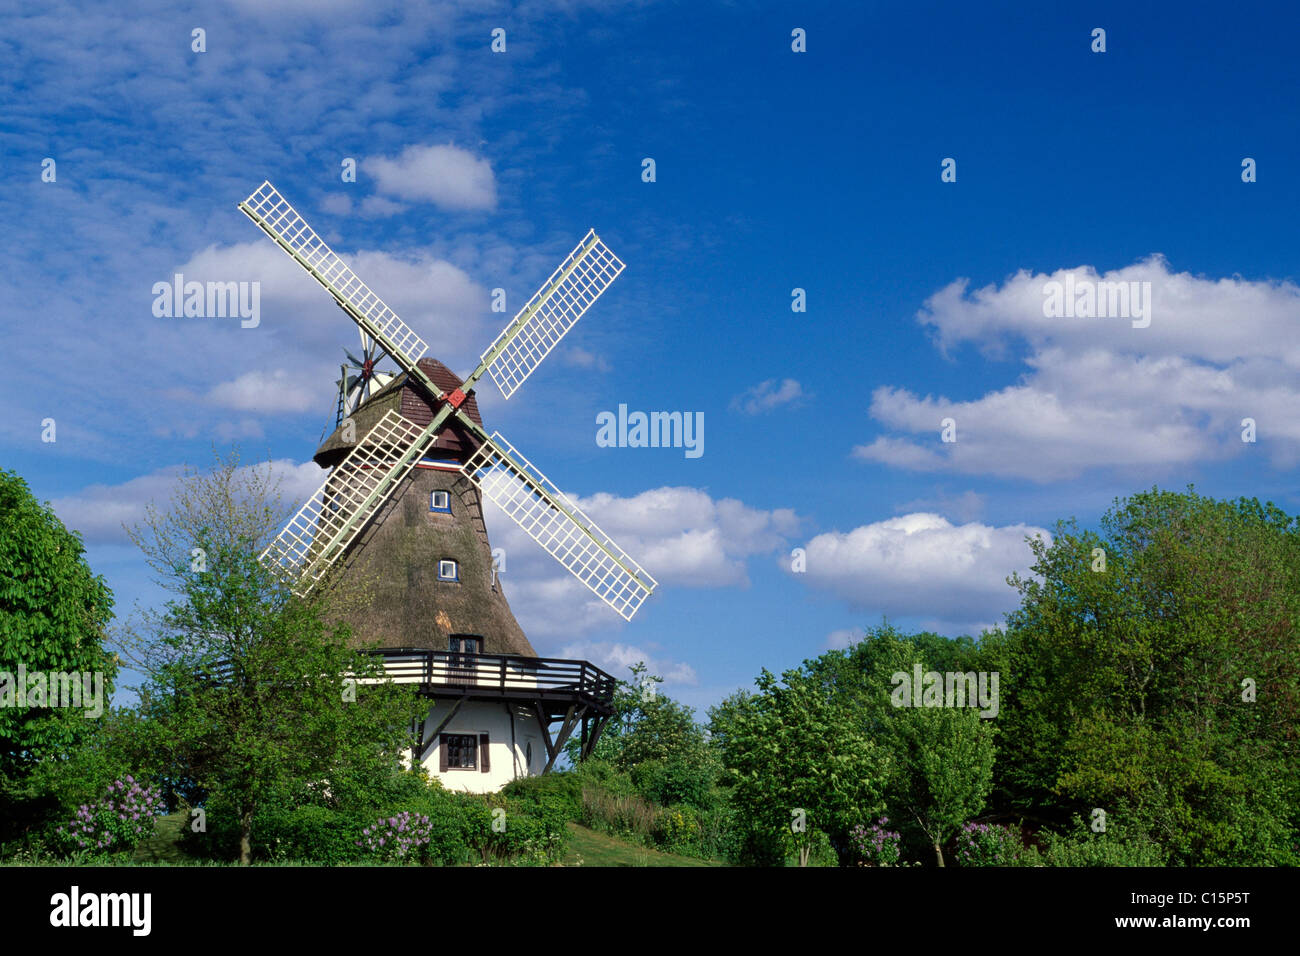 Windmill, Pommerby in the Angeln region on the Schlei River, Schleswig-Holstein, Germany, Europe - Stock Image